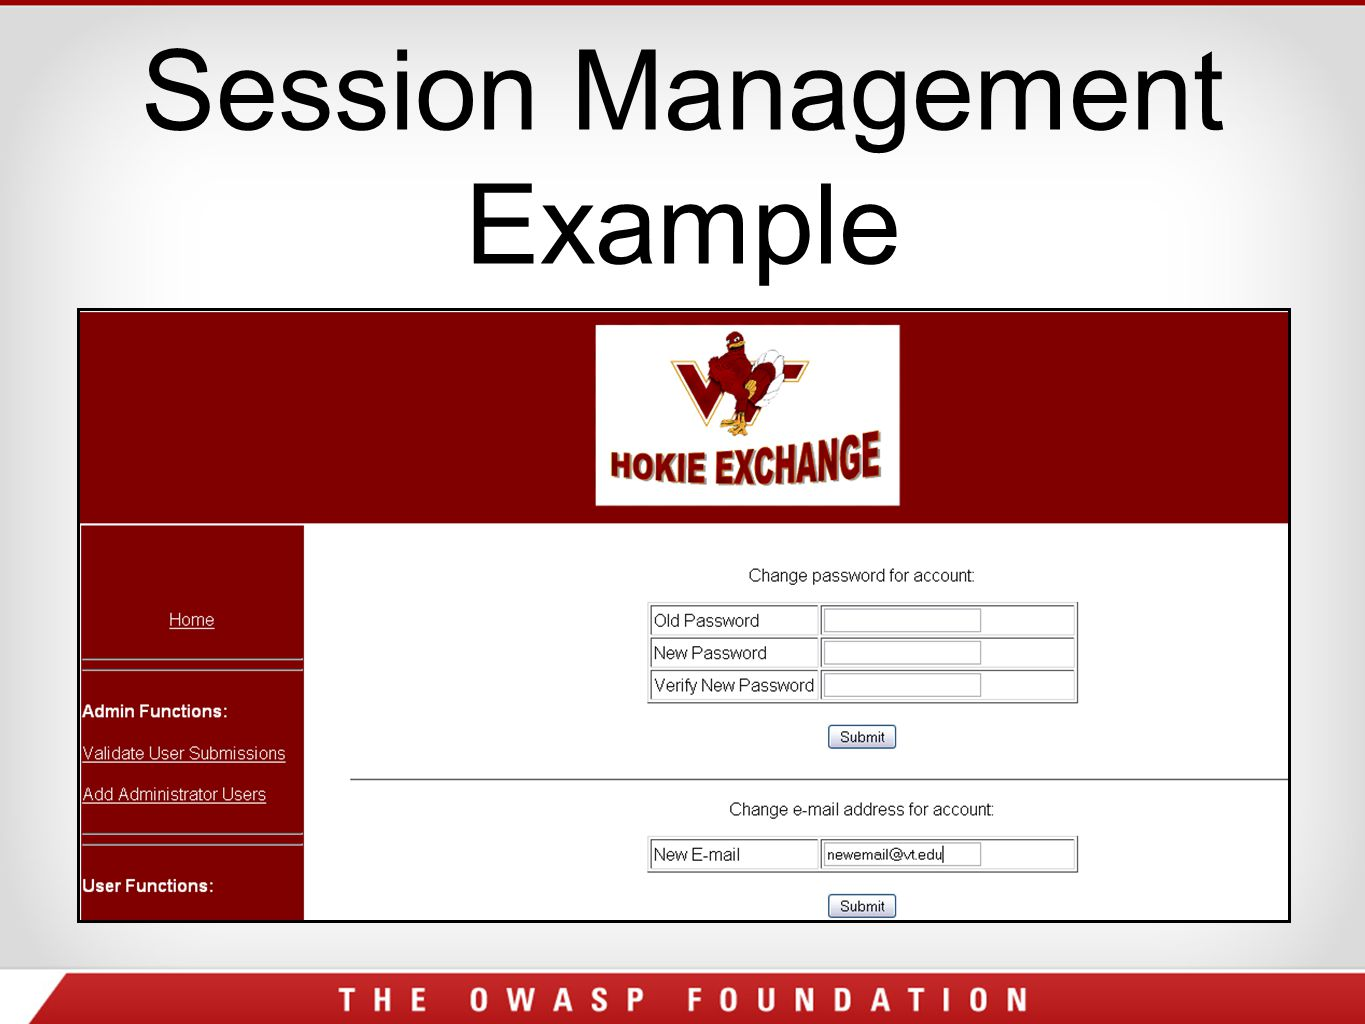 Session Management Example